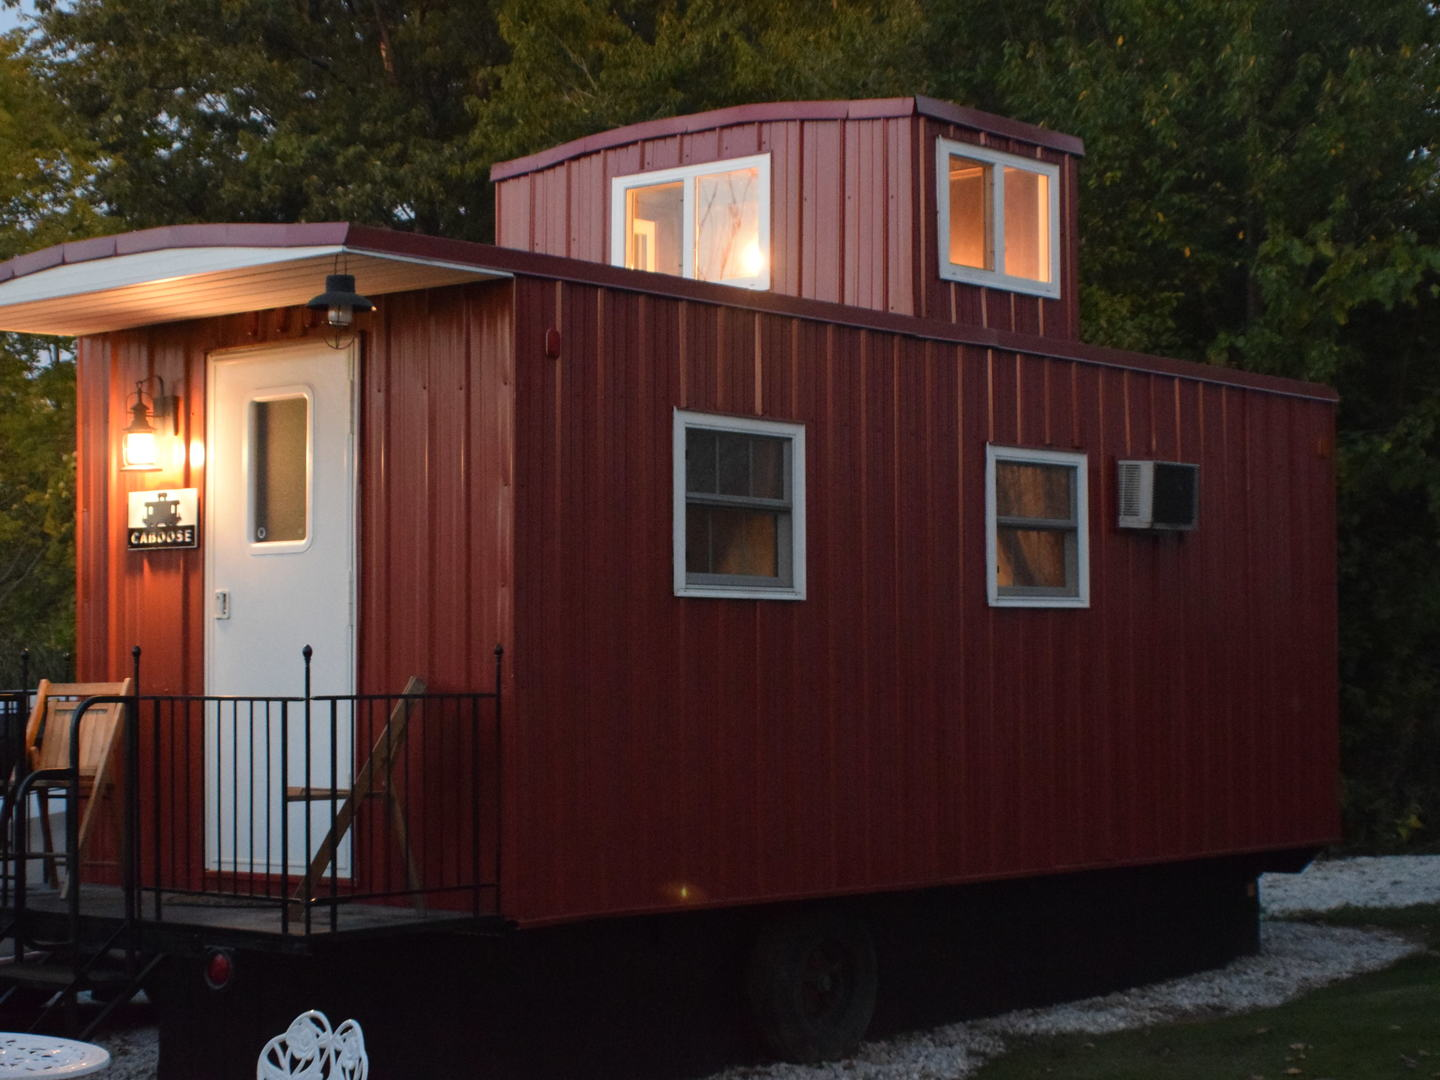 A train is parked on the side of a building at The Lost Pearl Bed and Breakfast.